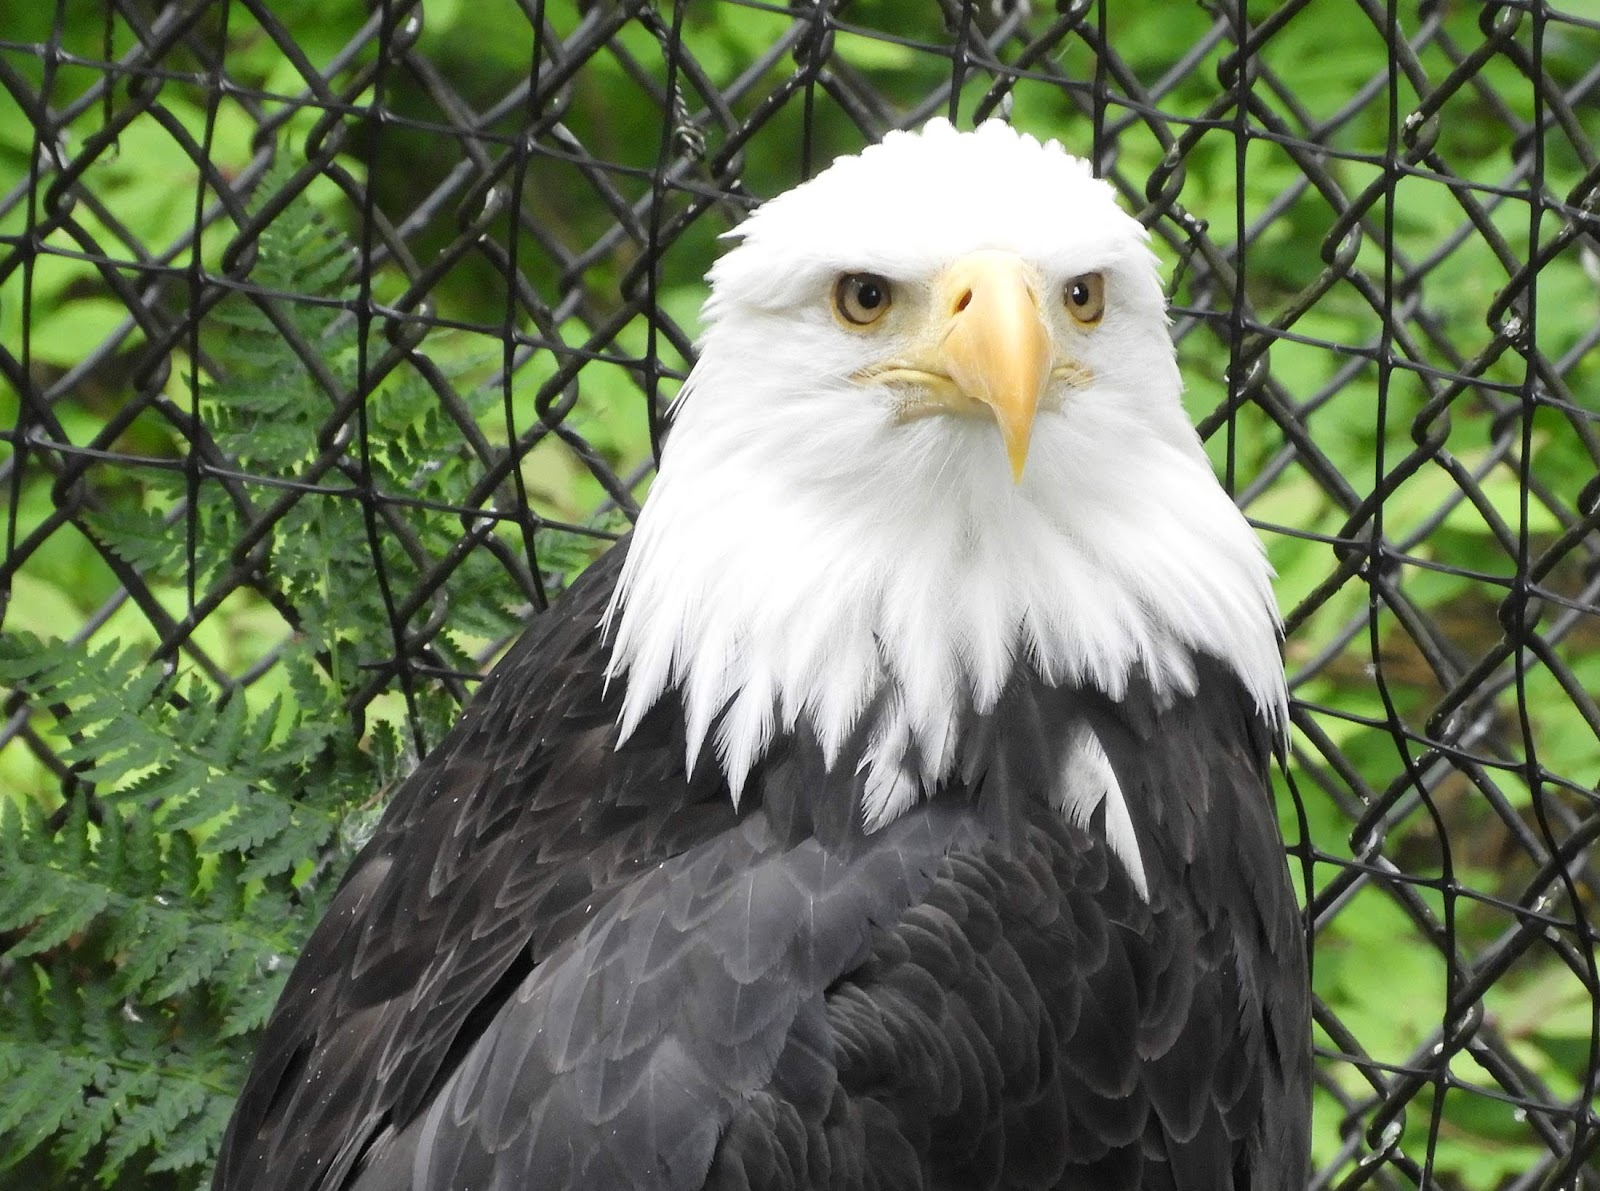 Bald eagle at Alaska Raptor Center, Sitka